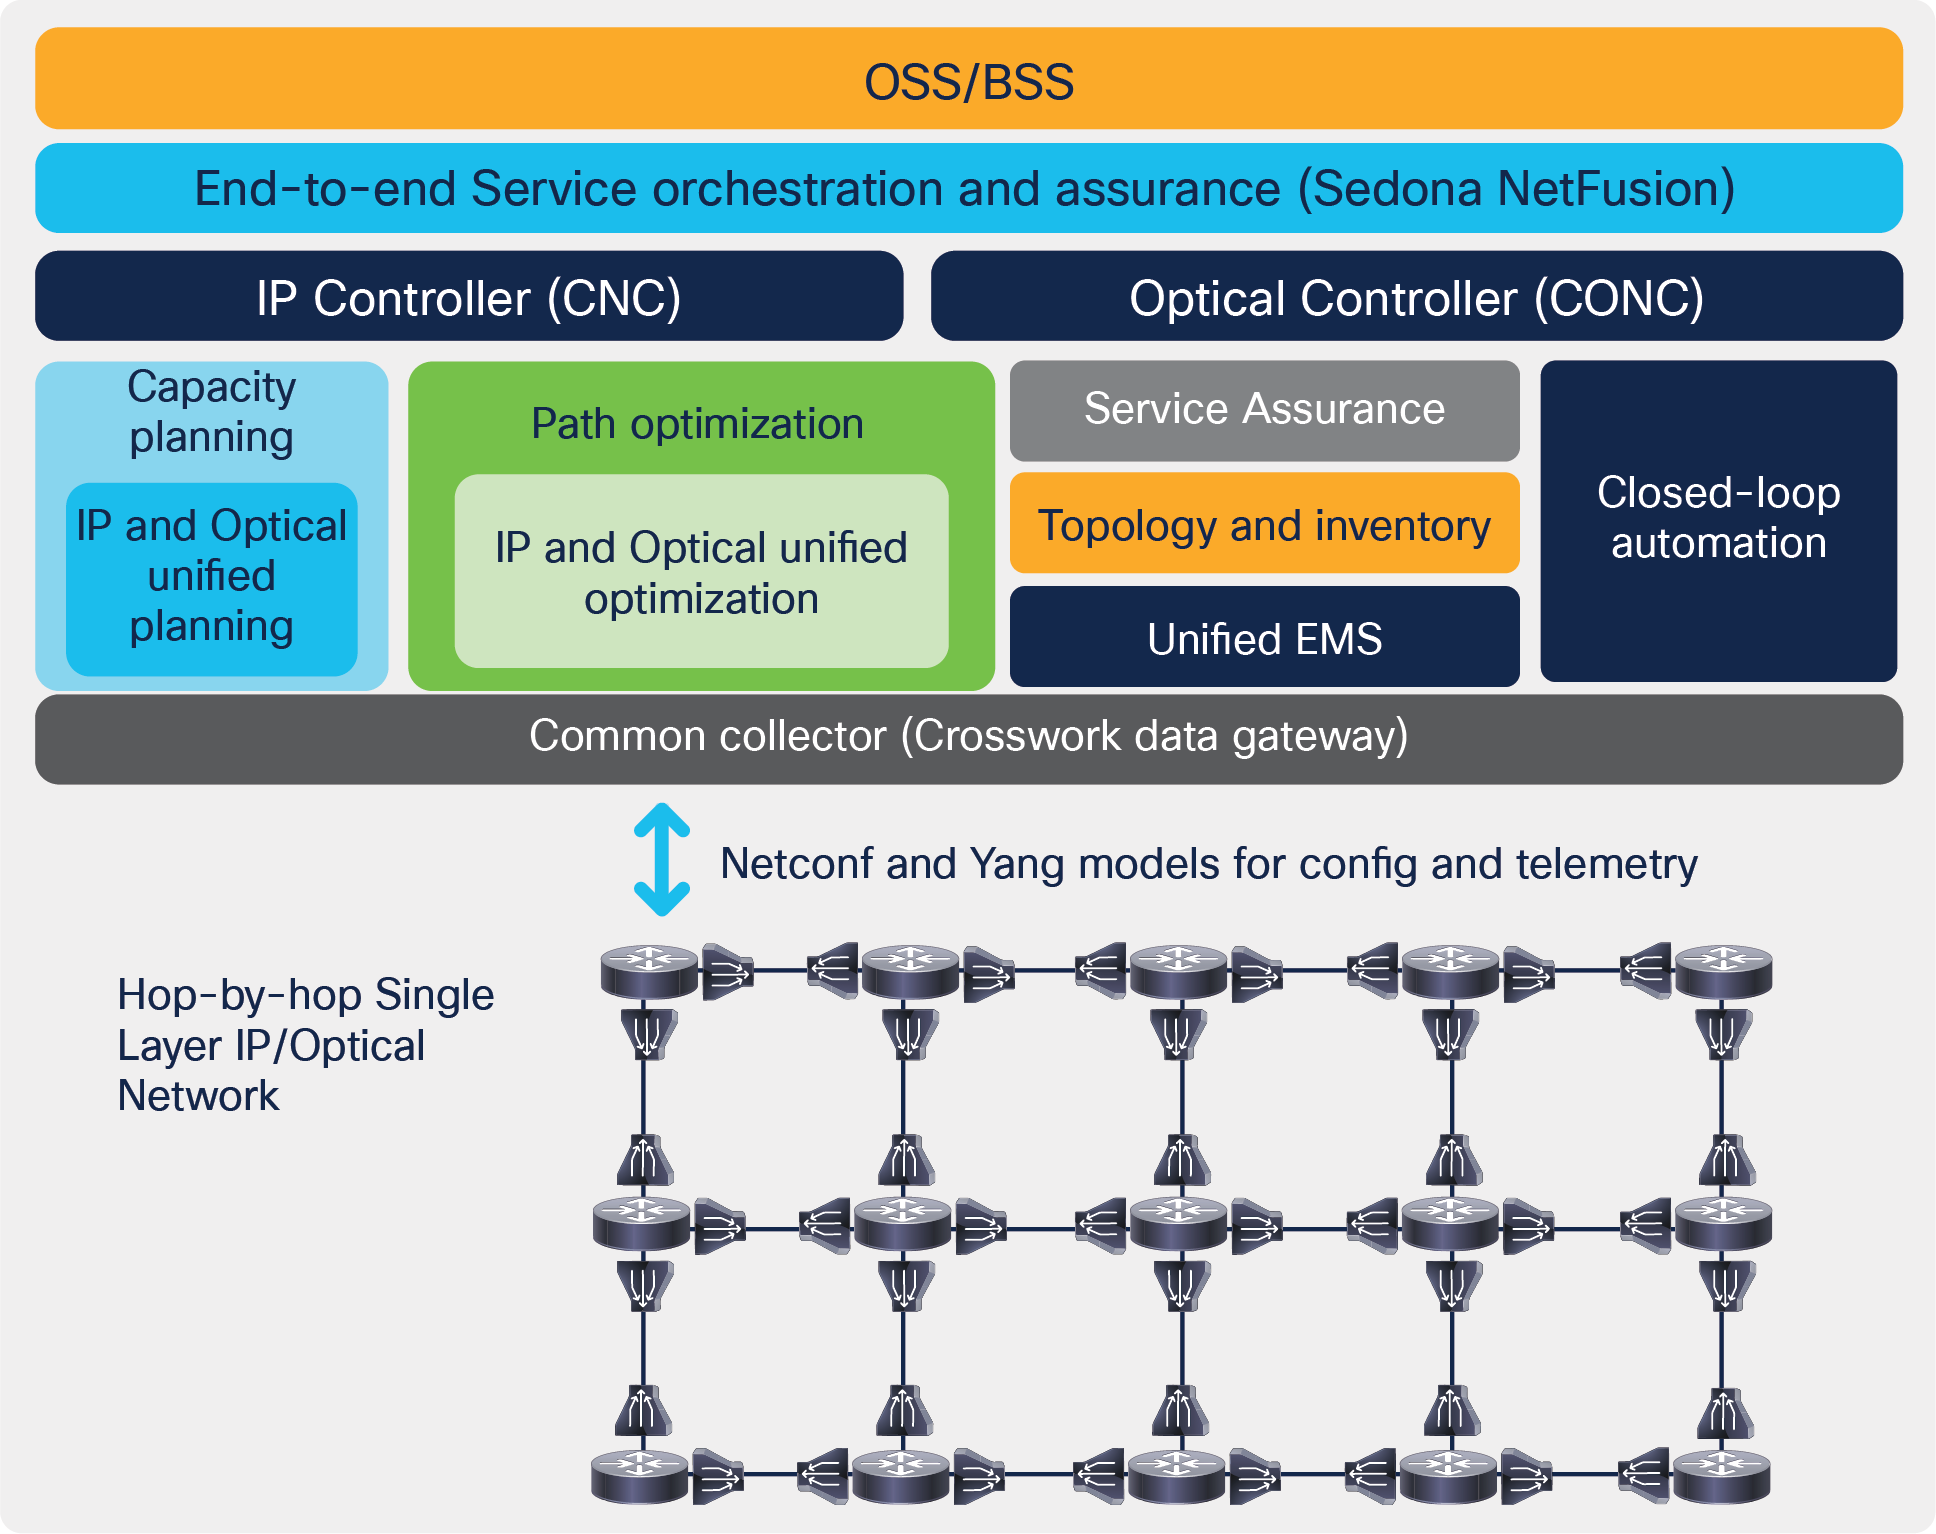 Cisco's Routed Optical Networking's control architecture with Sedona's NetFusion